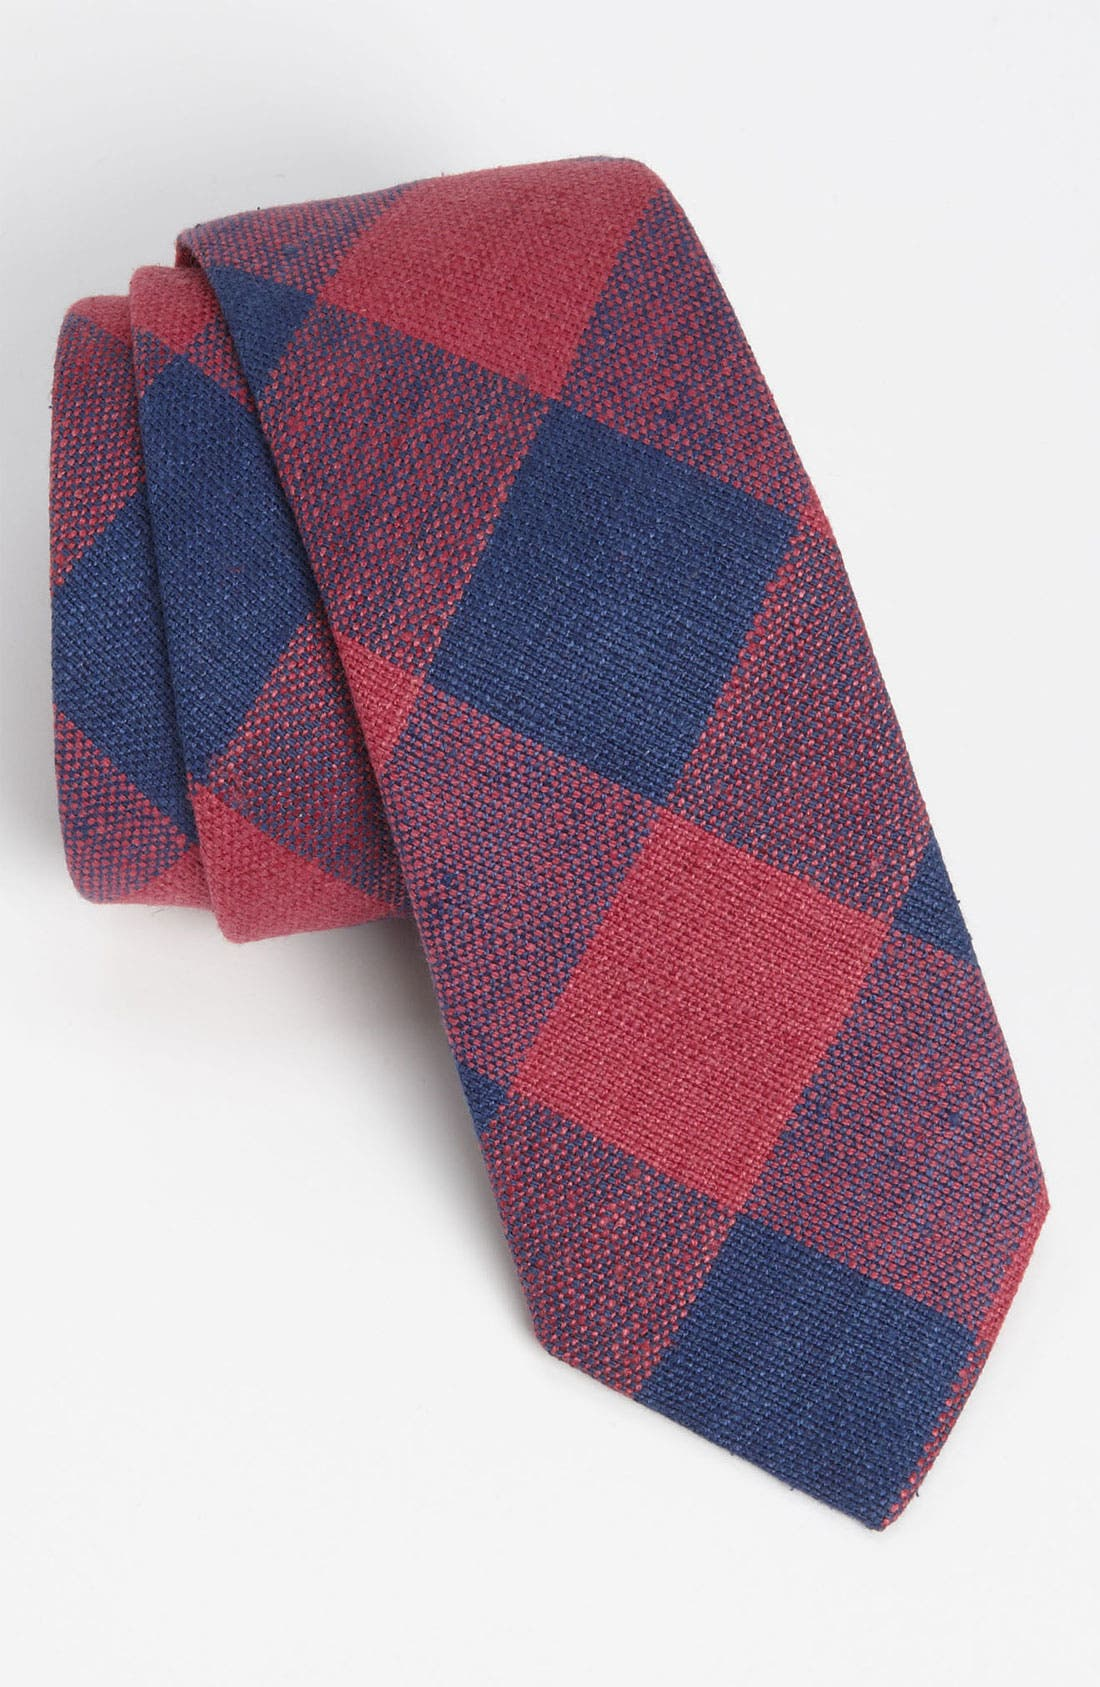 Alternate Image 1 Selected - Gitman 'Buffalo Check' Woven Silk Tie